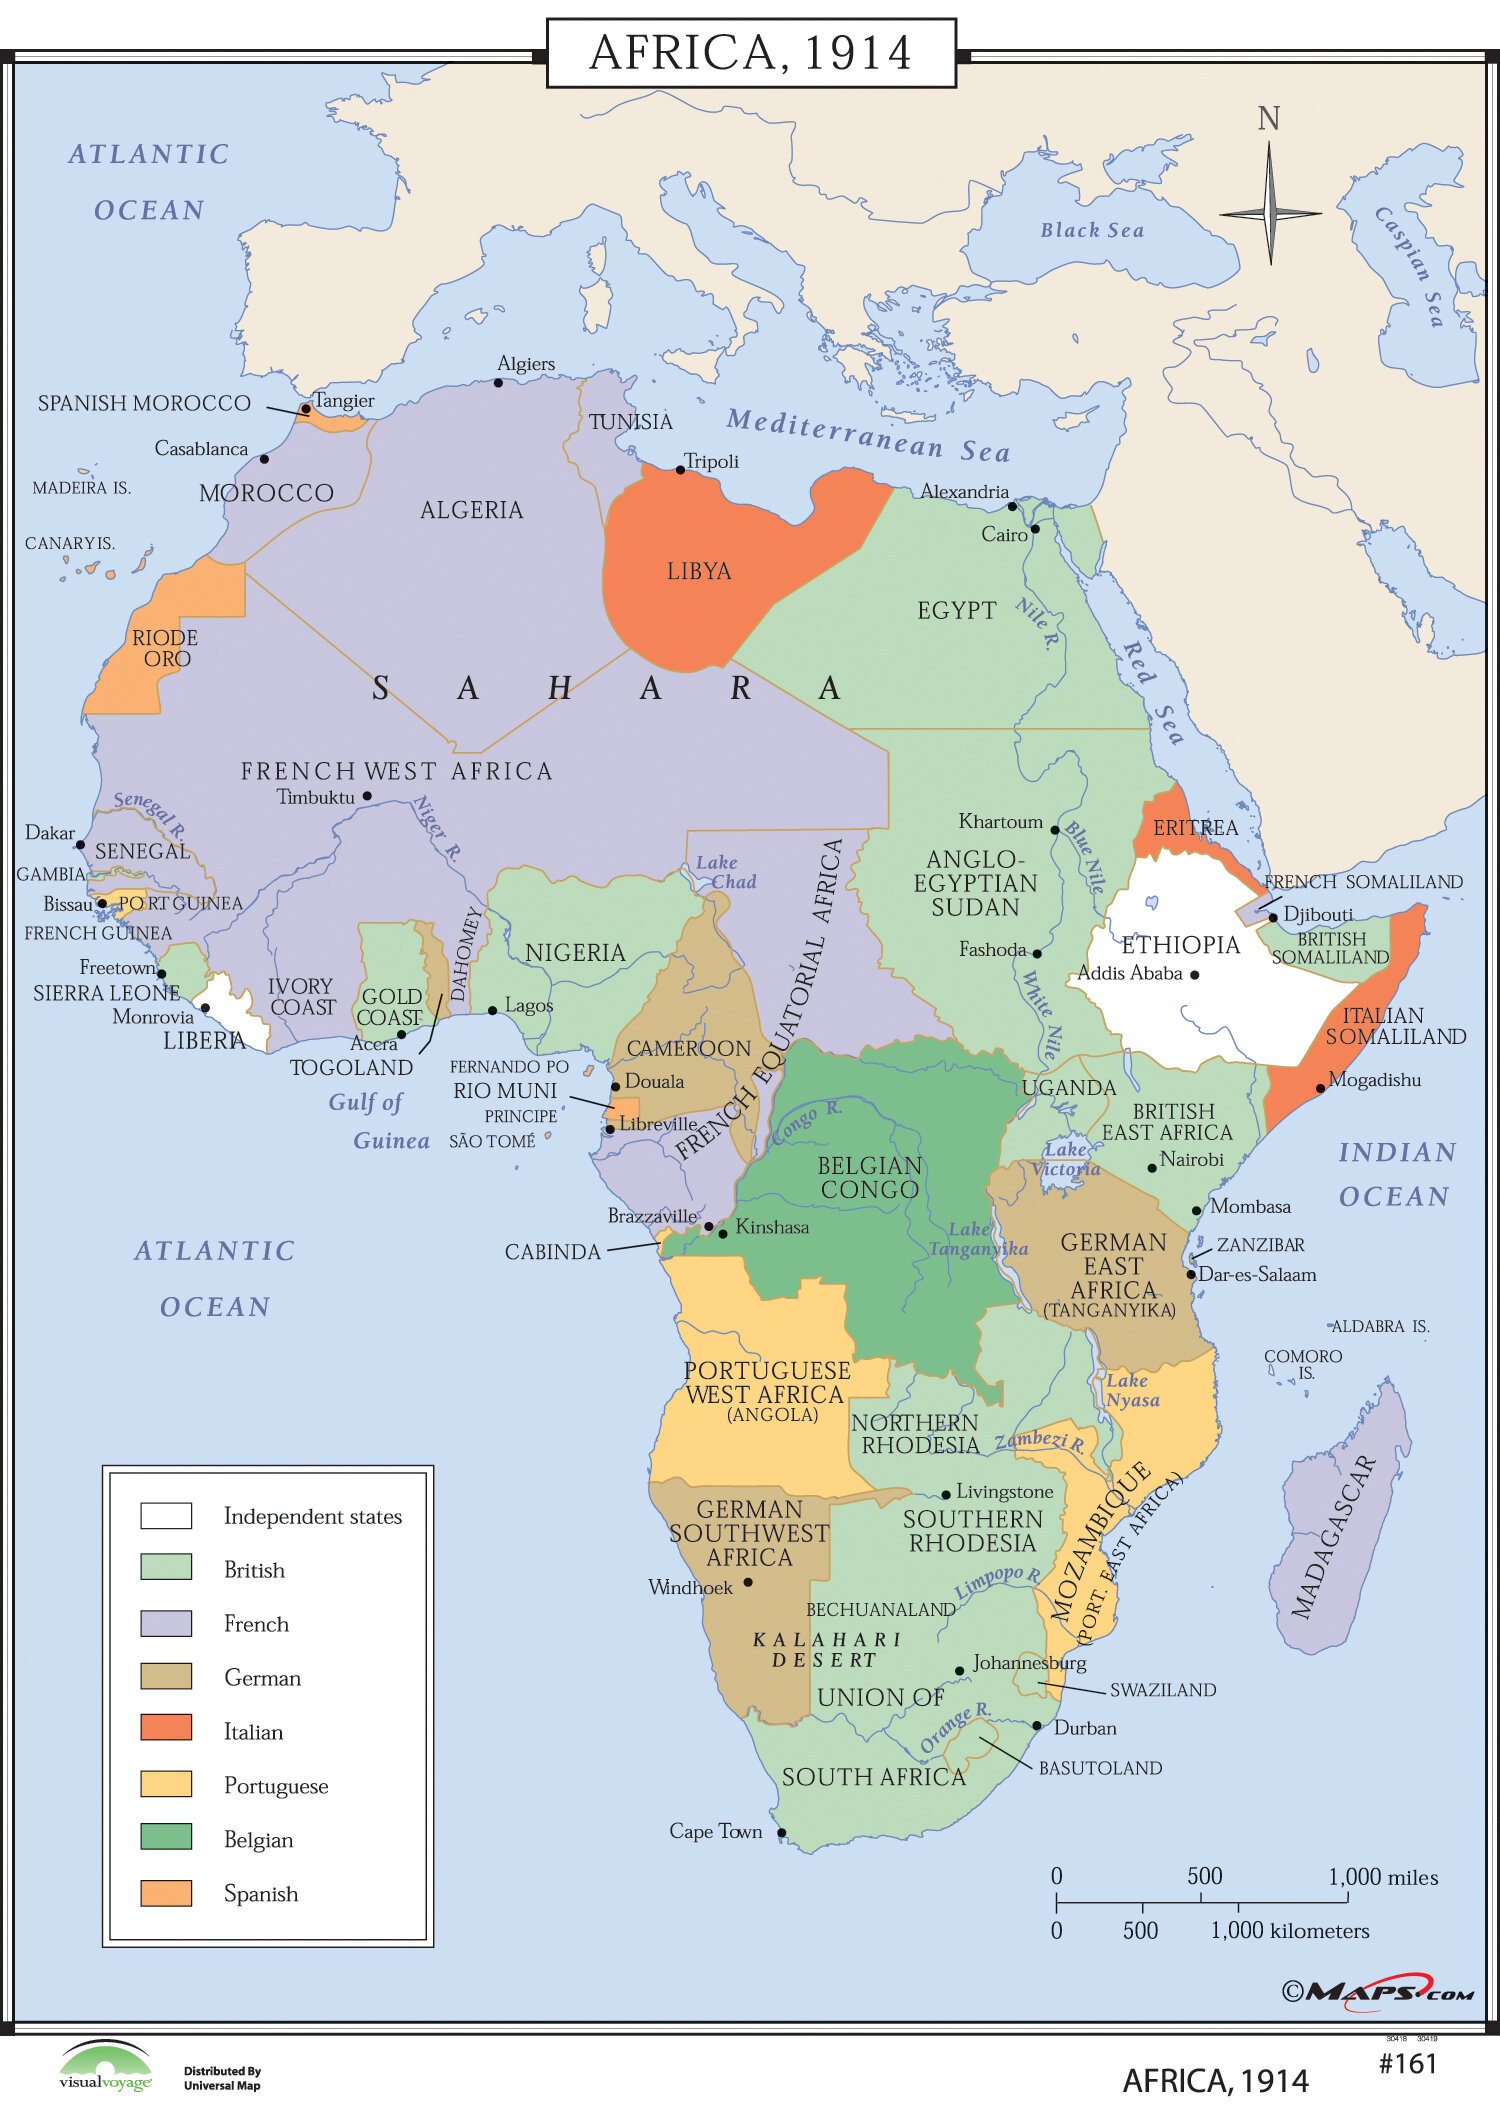 World History Wall Maps - Africa 1914 on map of ghana, map of continents, map of mediterranean, map of indonesia, map of saudi arabia, map of iran, map of middle east, map of yemen, map of uganda, map of morocco, map of ethiopia, map of world, map of tunisia, map of iraq, map of sudan, map of antarctica, map of libya, map of mali, map of tanzania, map of zimbabwe,